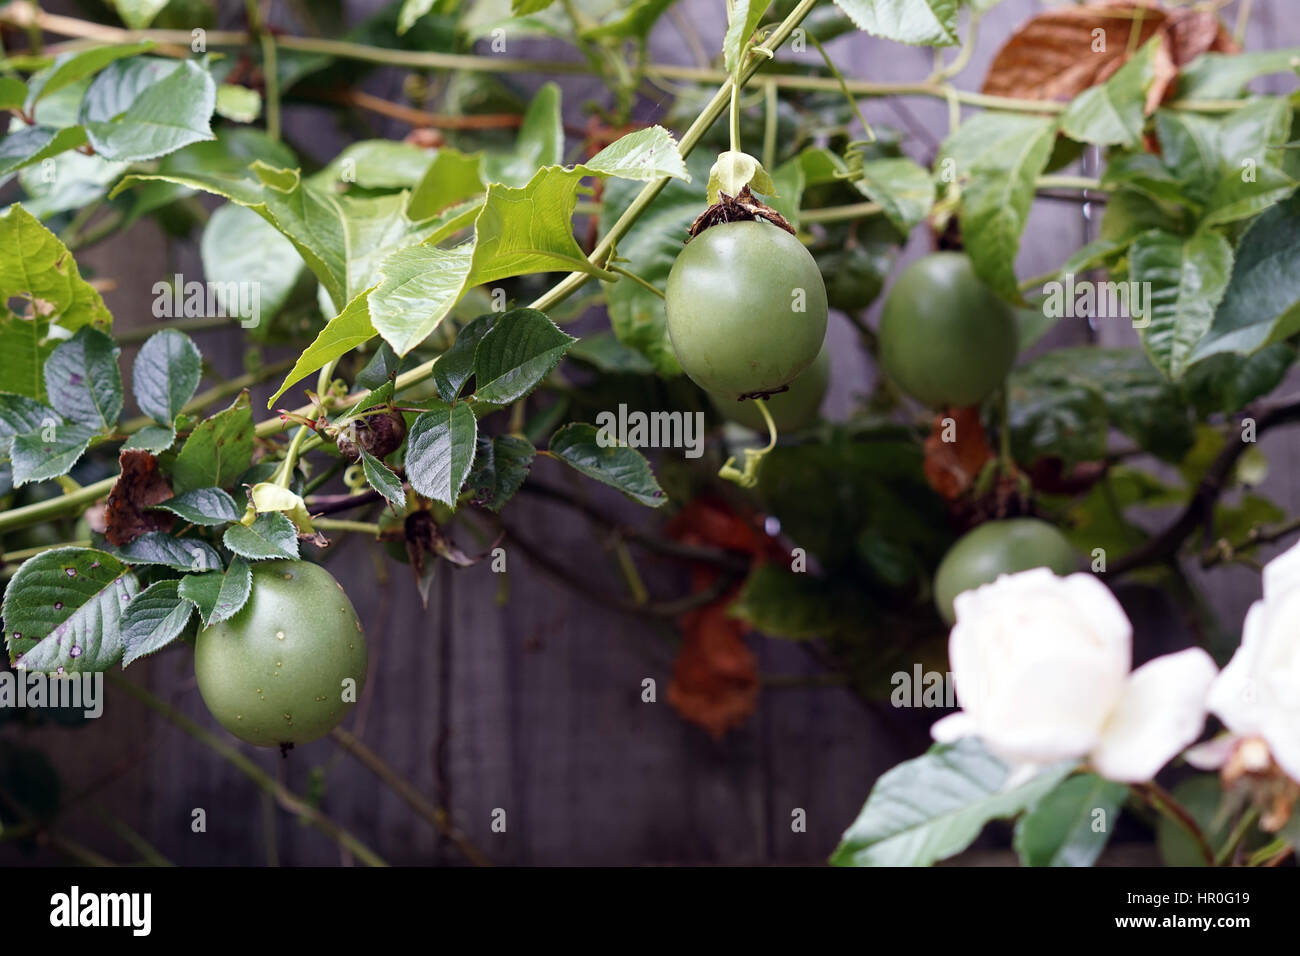 Passion fruit vine growing in a home garden stock photo for Gardening is my passion